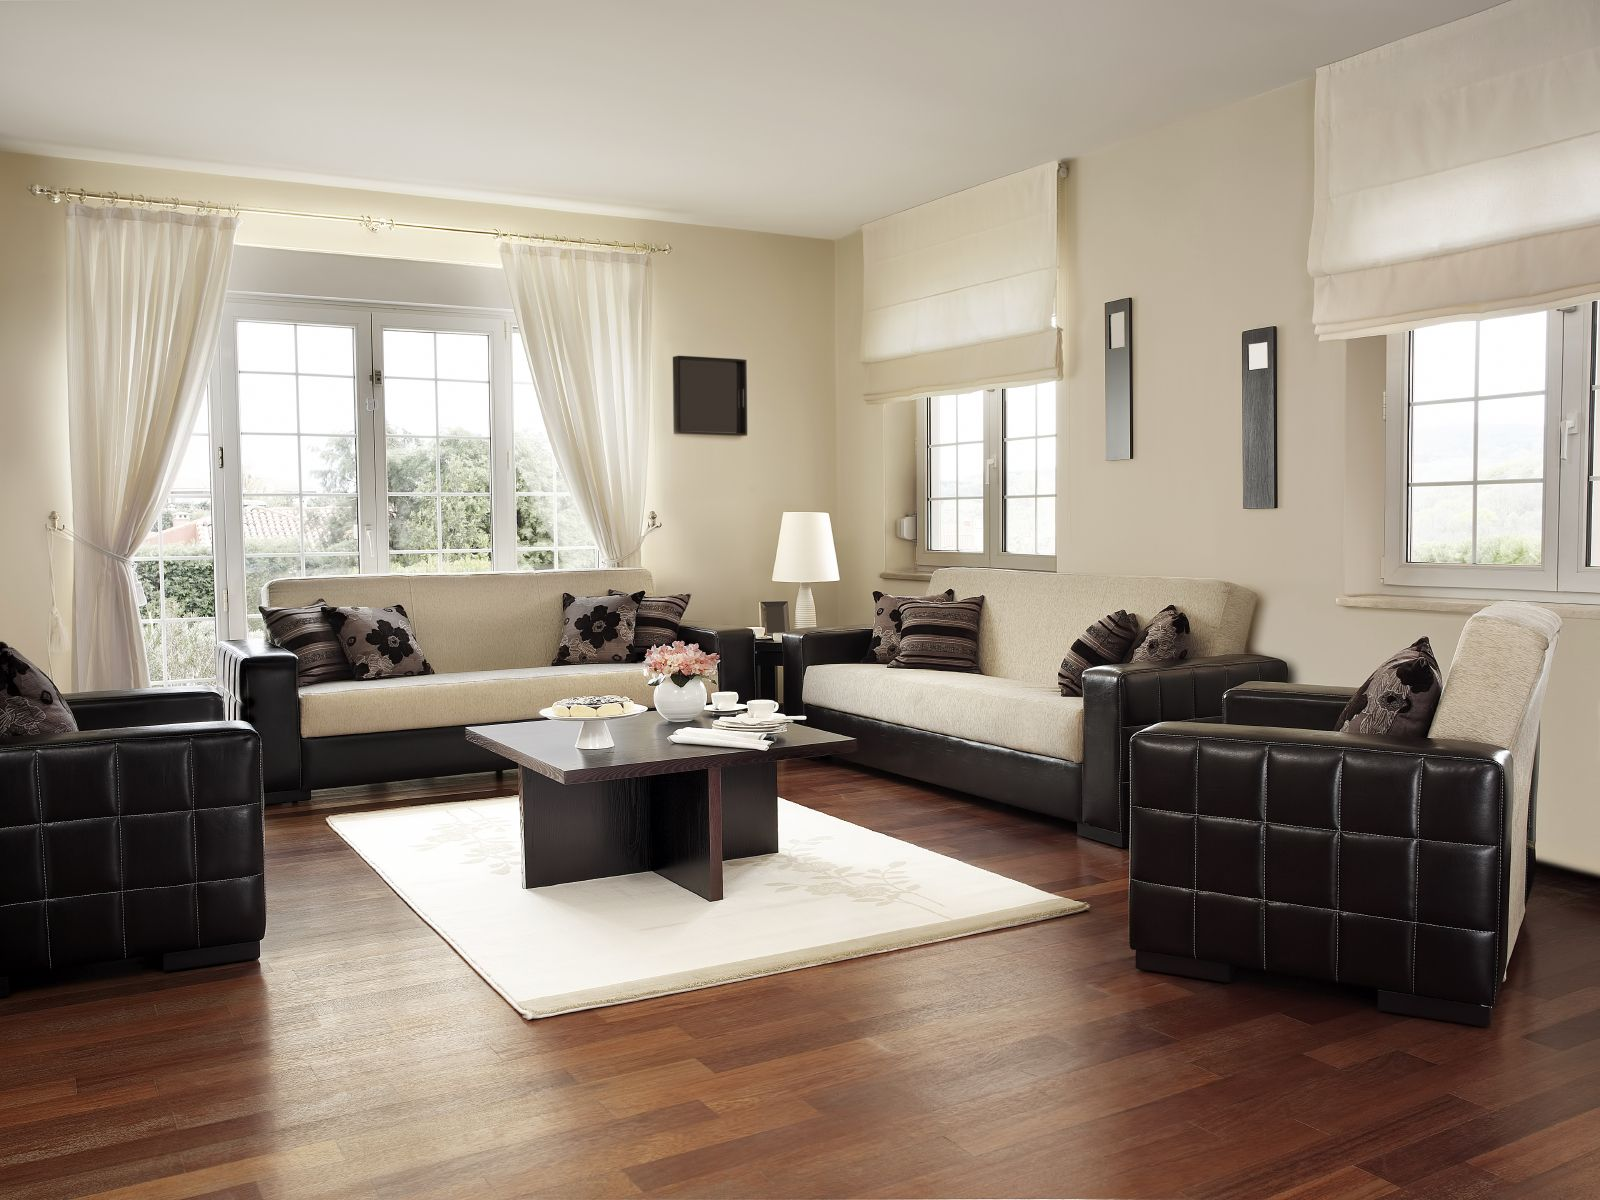 450 Examples of Living Rooms with Hardwood Flooring